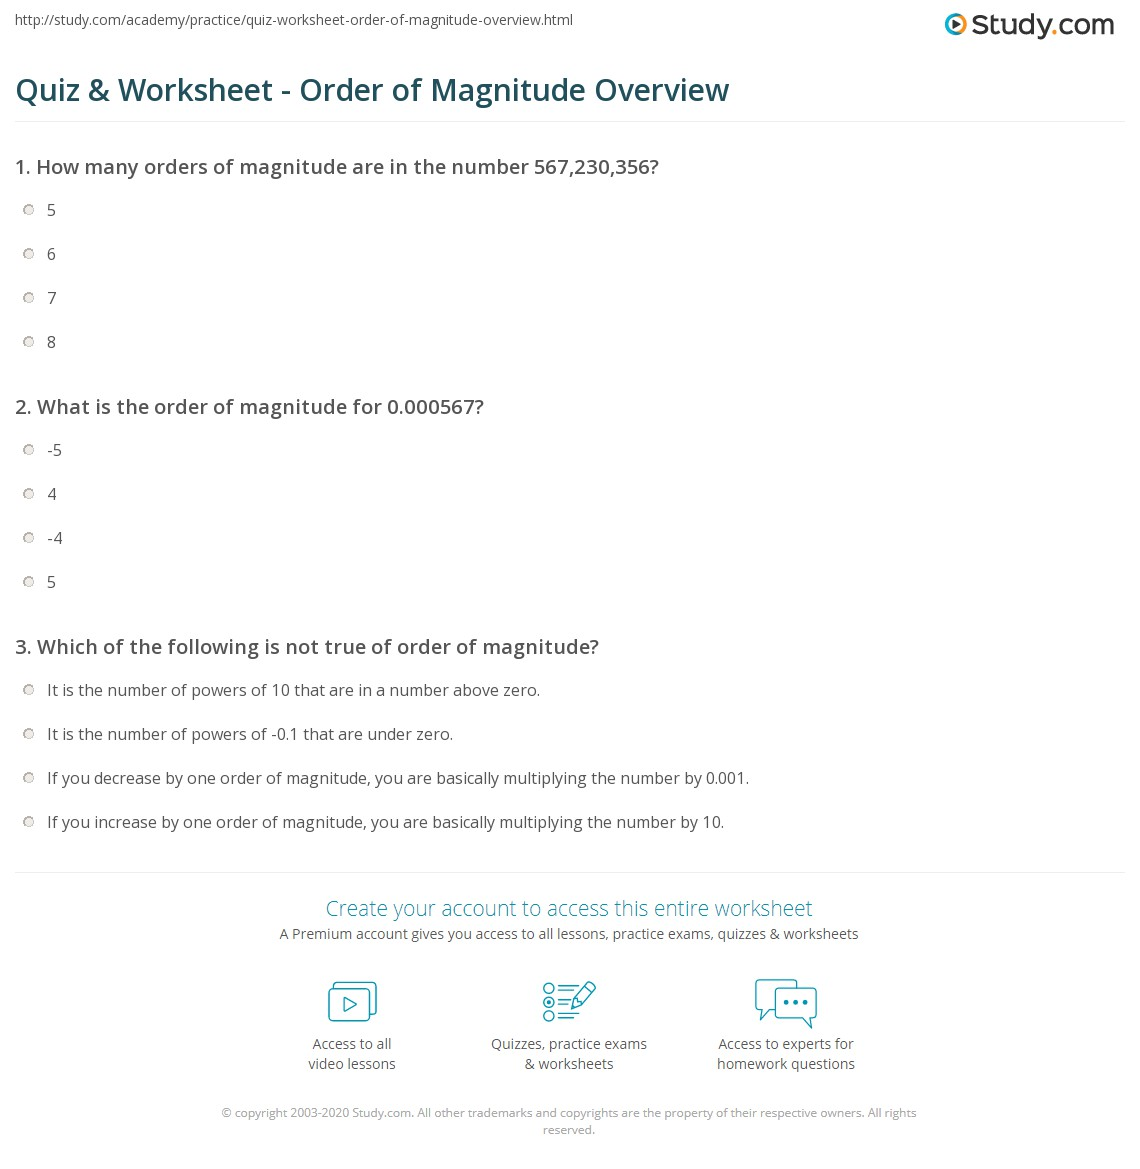 Quiz & Worksheet - Order of Magnitude Overview | Study.com